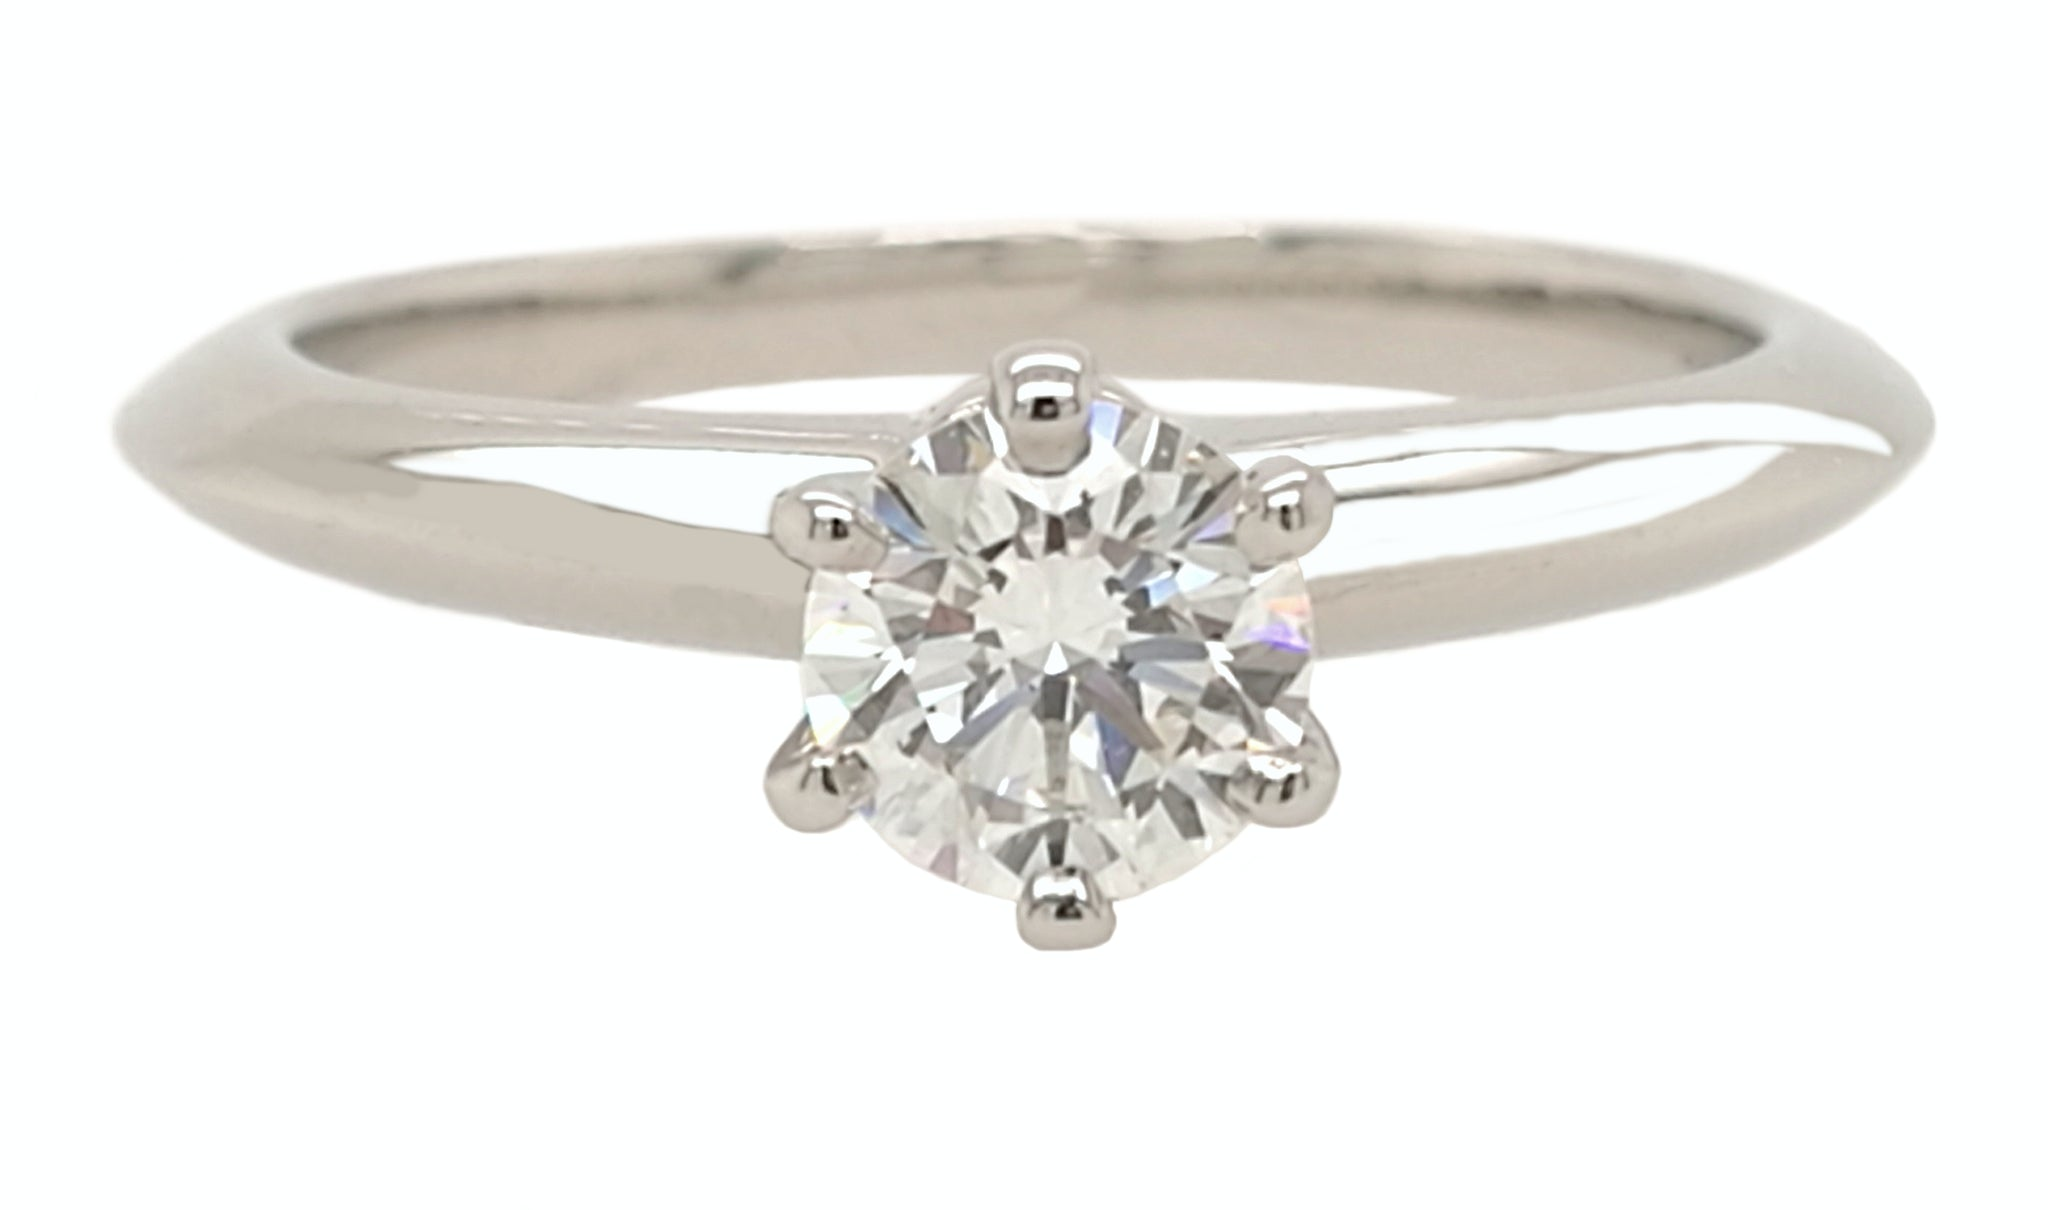 Tiffany & Co. 0.34ct H/VVS1 Round Brilliant Cut Diamond Engagement Ring